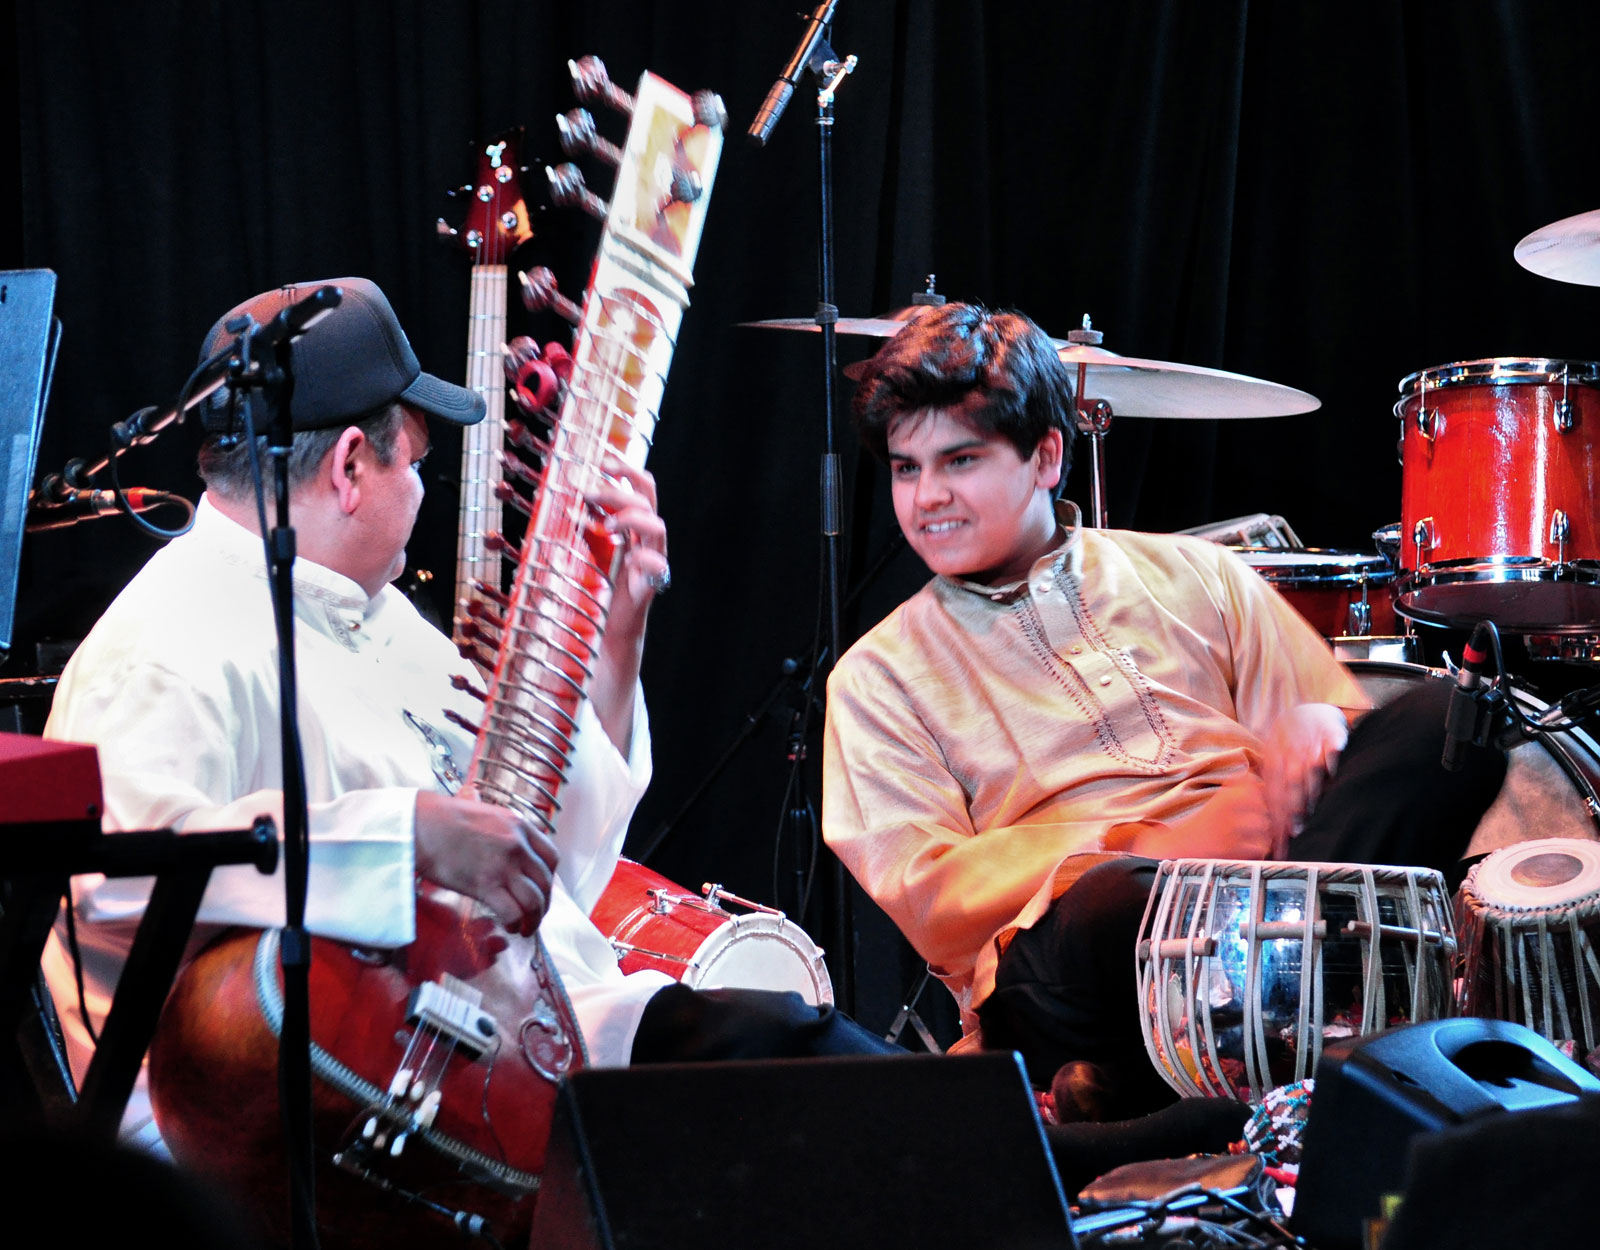 Ashwin Batish and Keshav Batish playing traditional North Indian sitar and tabla - live at the Kuumbwa Jazz Center, Santa Cruz. All rights reserved. �12 Ashwin Batish. Copyrighted image. Photographer Chris Bratt